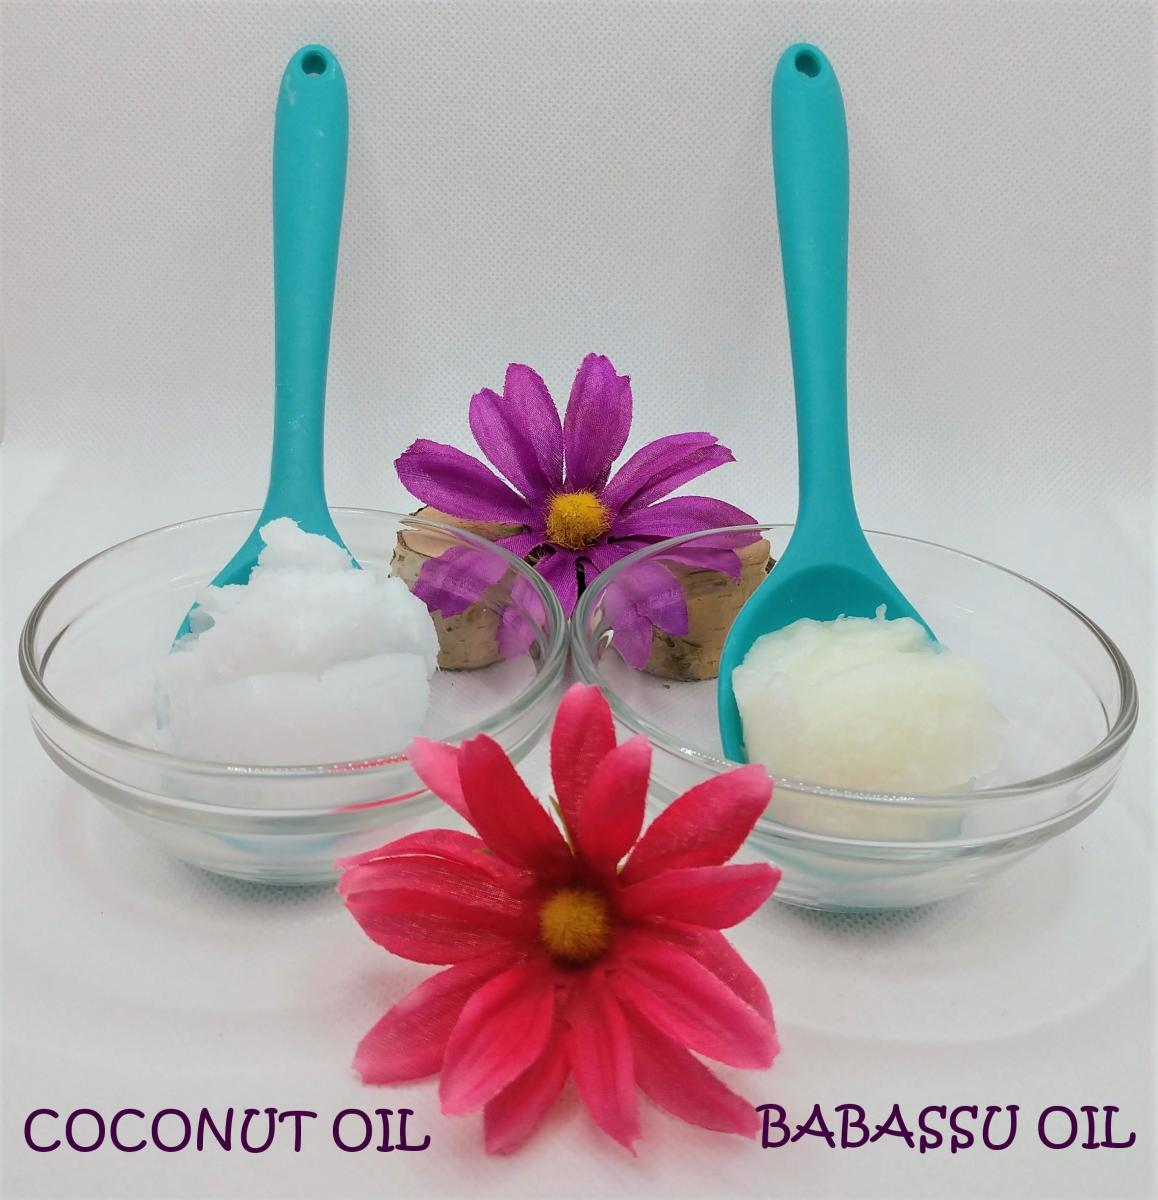 Coconut oil and Babassu oil are very similar.